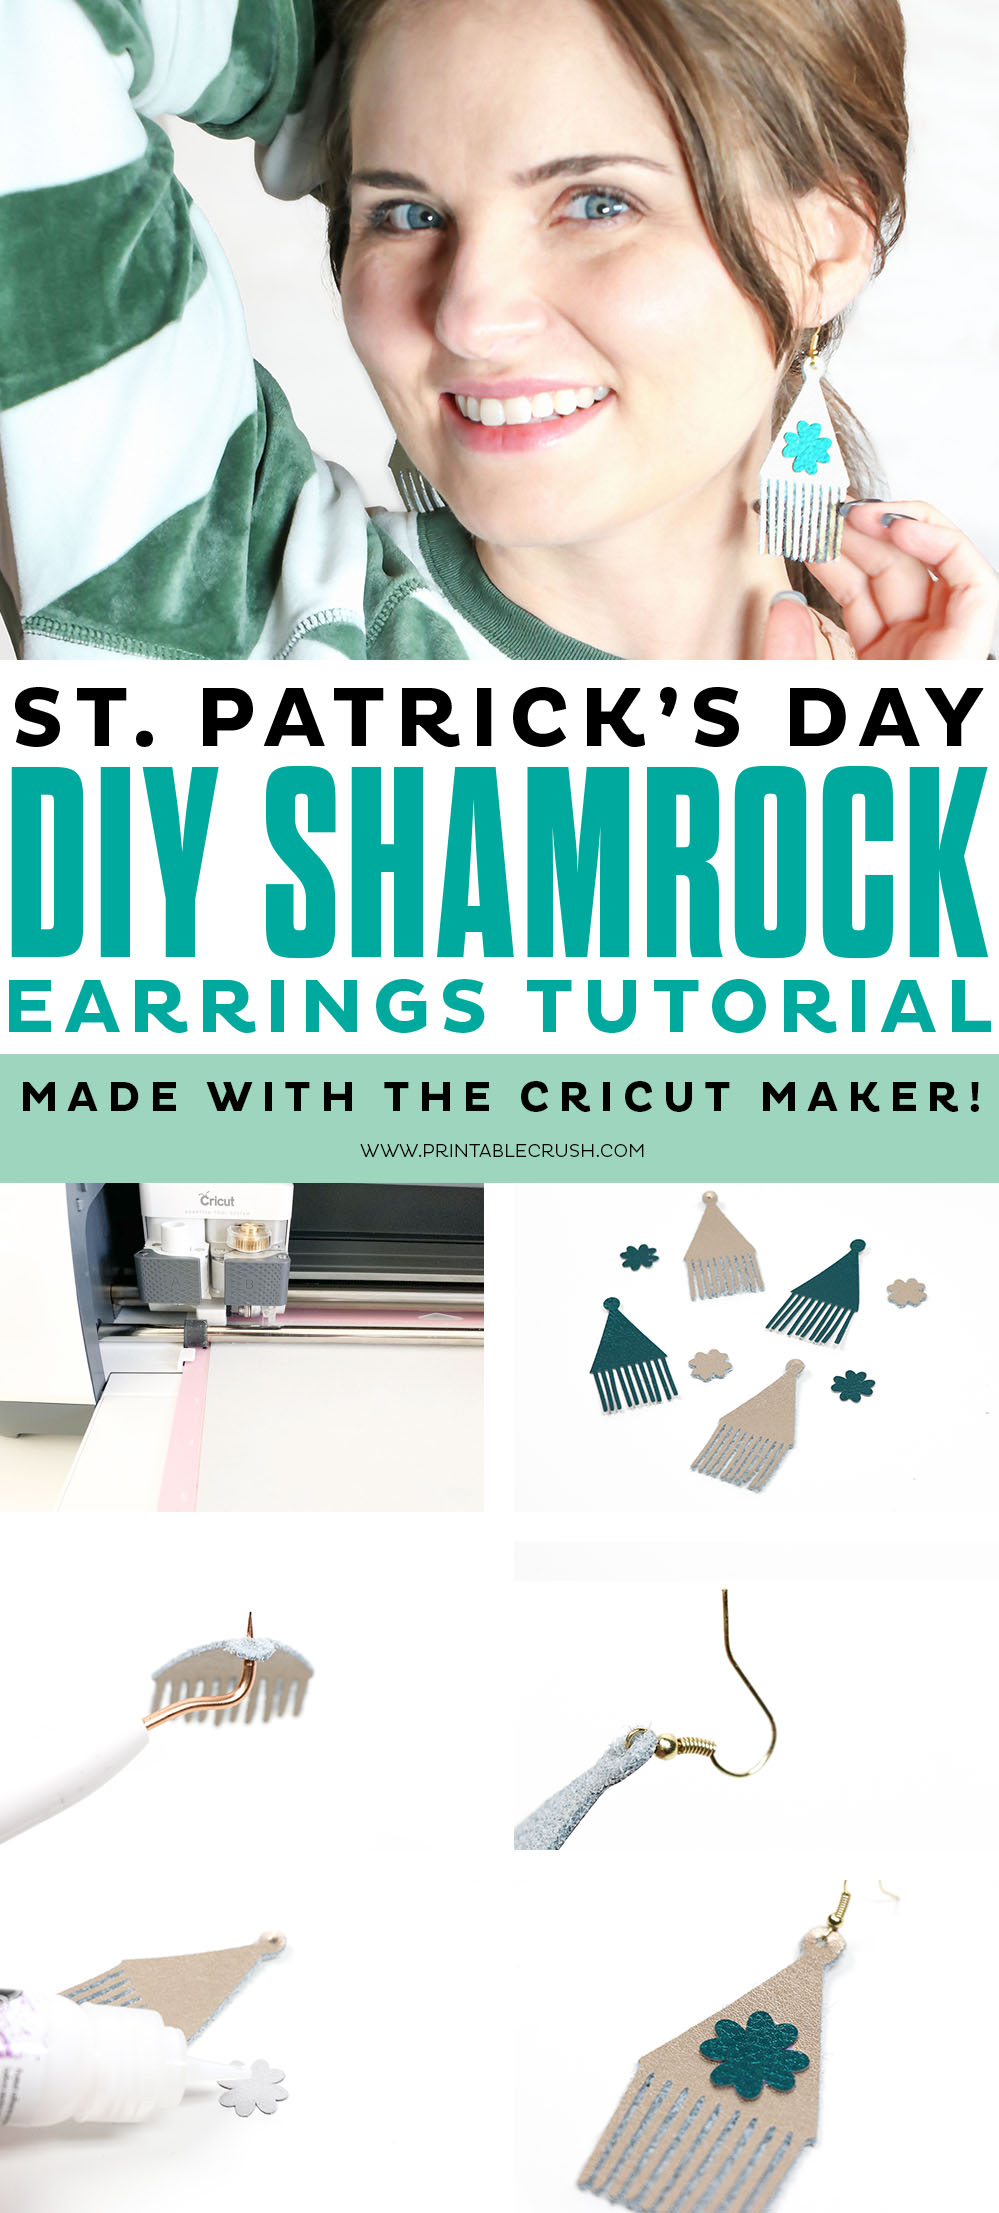 Break out your Cricut Maker to create these St. Patrick's Day DIY Shamrock Earrings!